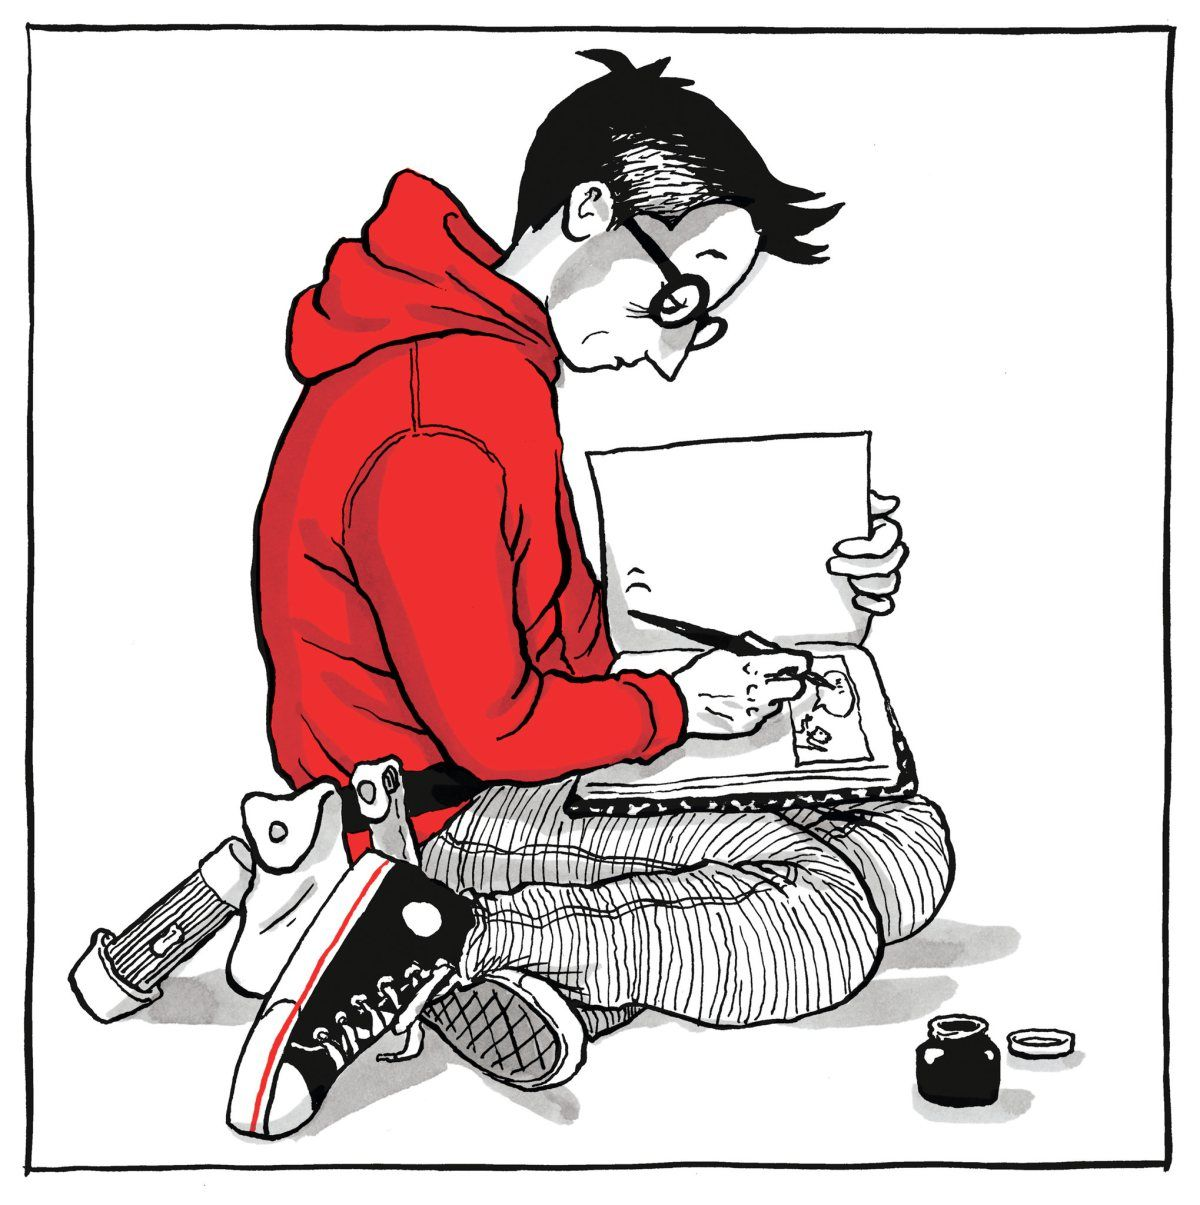 At Least 3 Reasons Alison Bechdel's Fun Home Remains a Rare